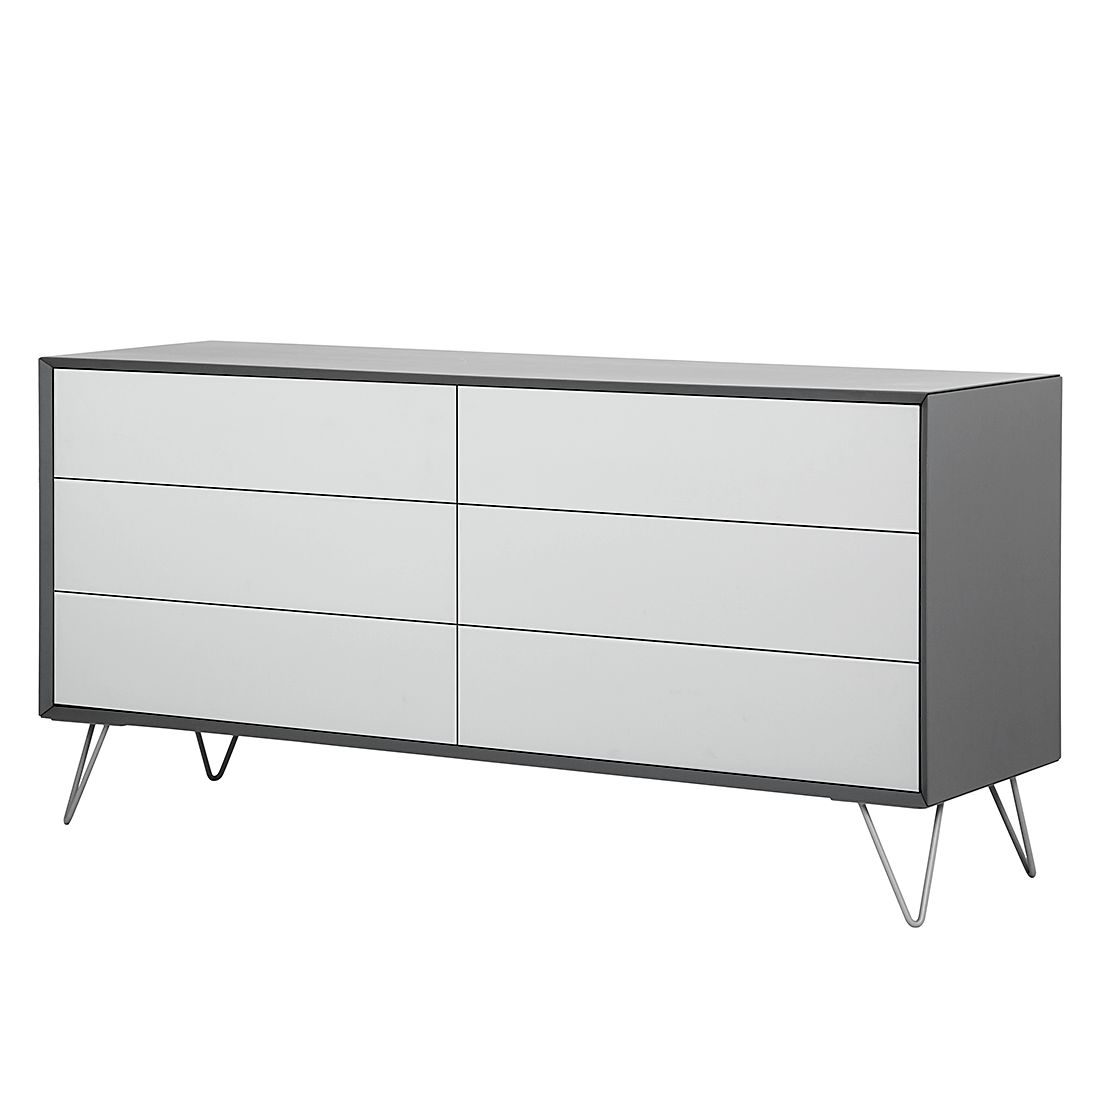 kommode grau matt kommode romina sideboard weiss matt schnelle kommoden grau matt carprola for. Black Bedroom Furniture Sets. Home Design Ideas